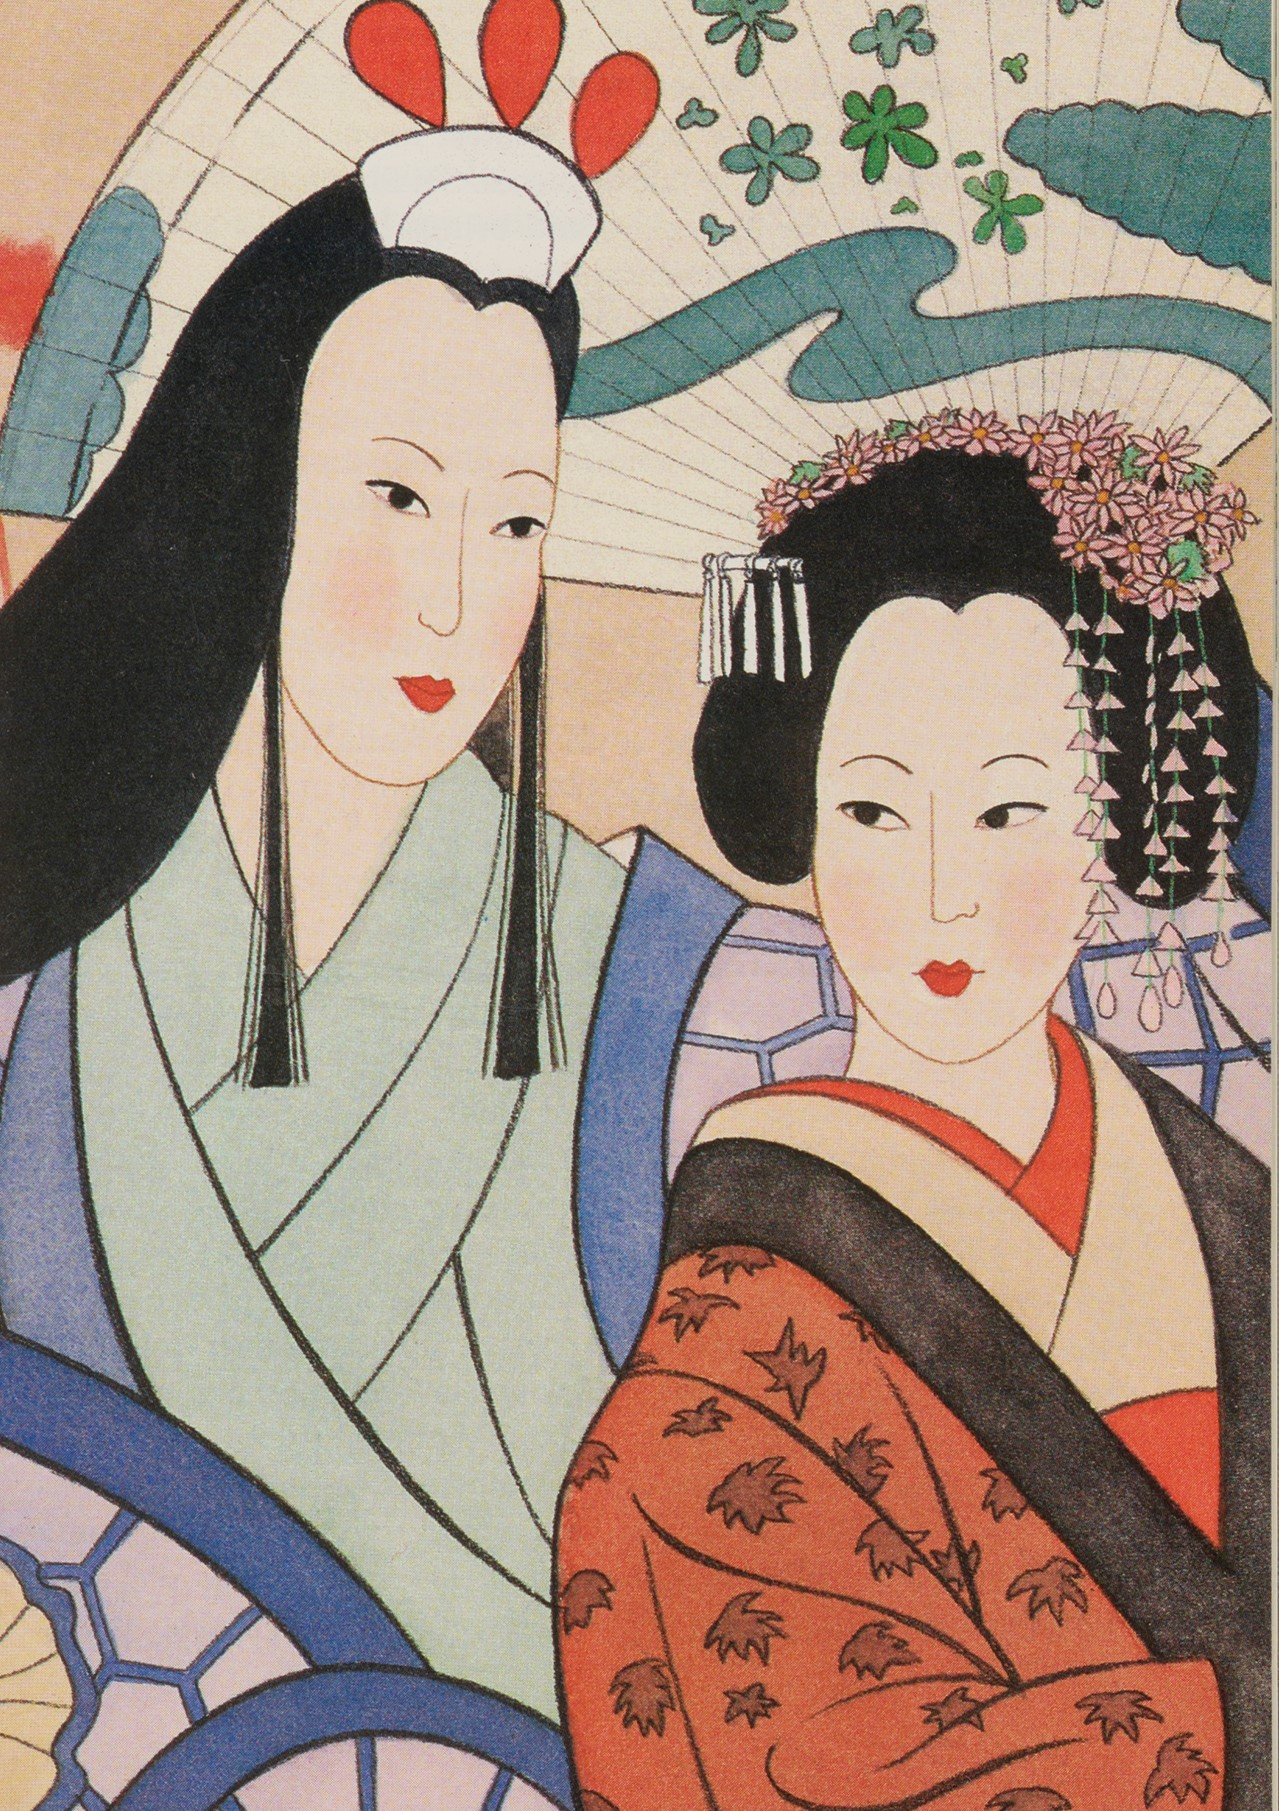 Lady Murasaki Shikibu and Sei Shonagon in Japanese Portraits, by Dorothy and Thomas Hoobler, illustrated by Victoria Bruck. 1994.